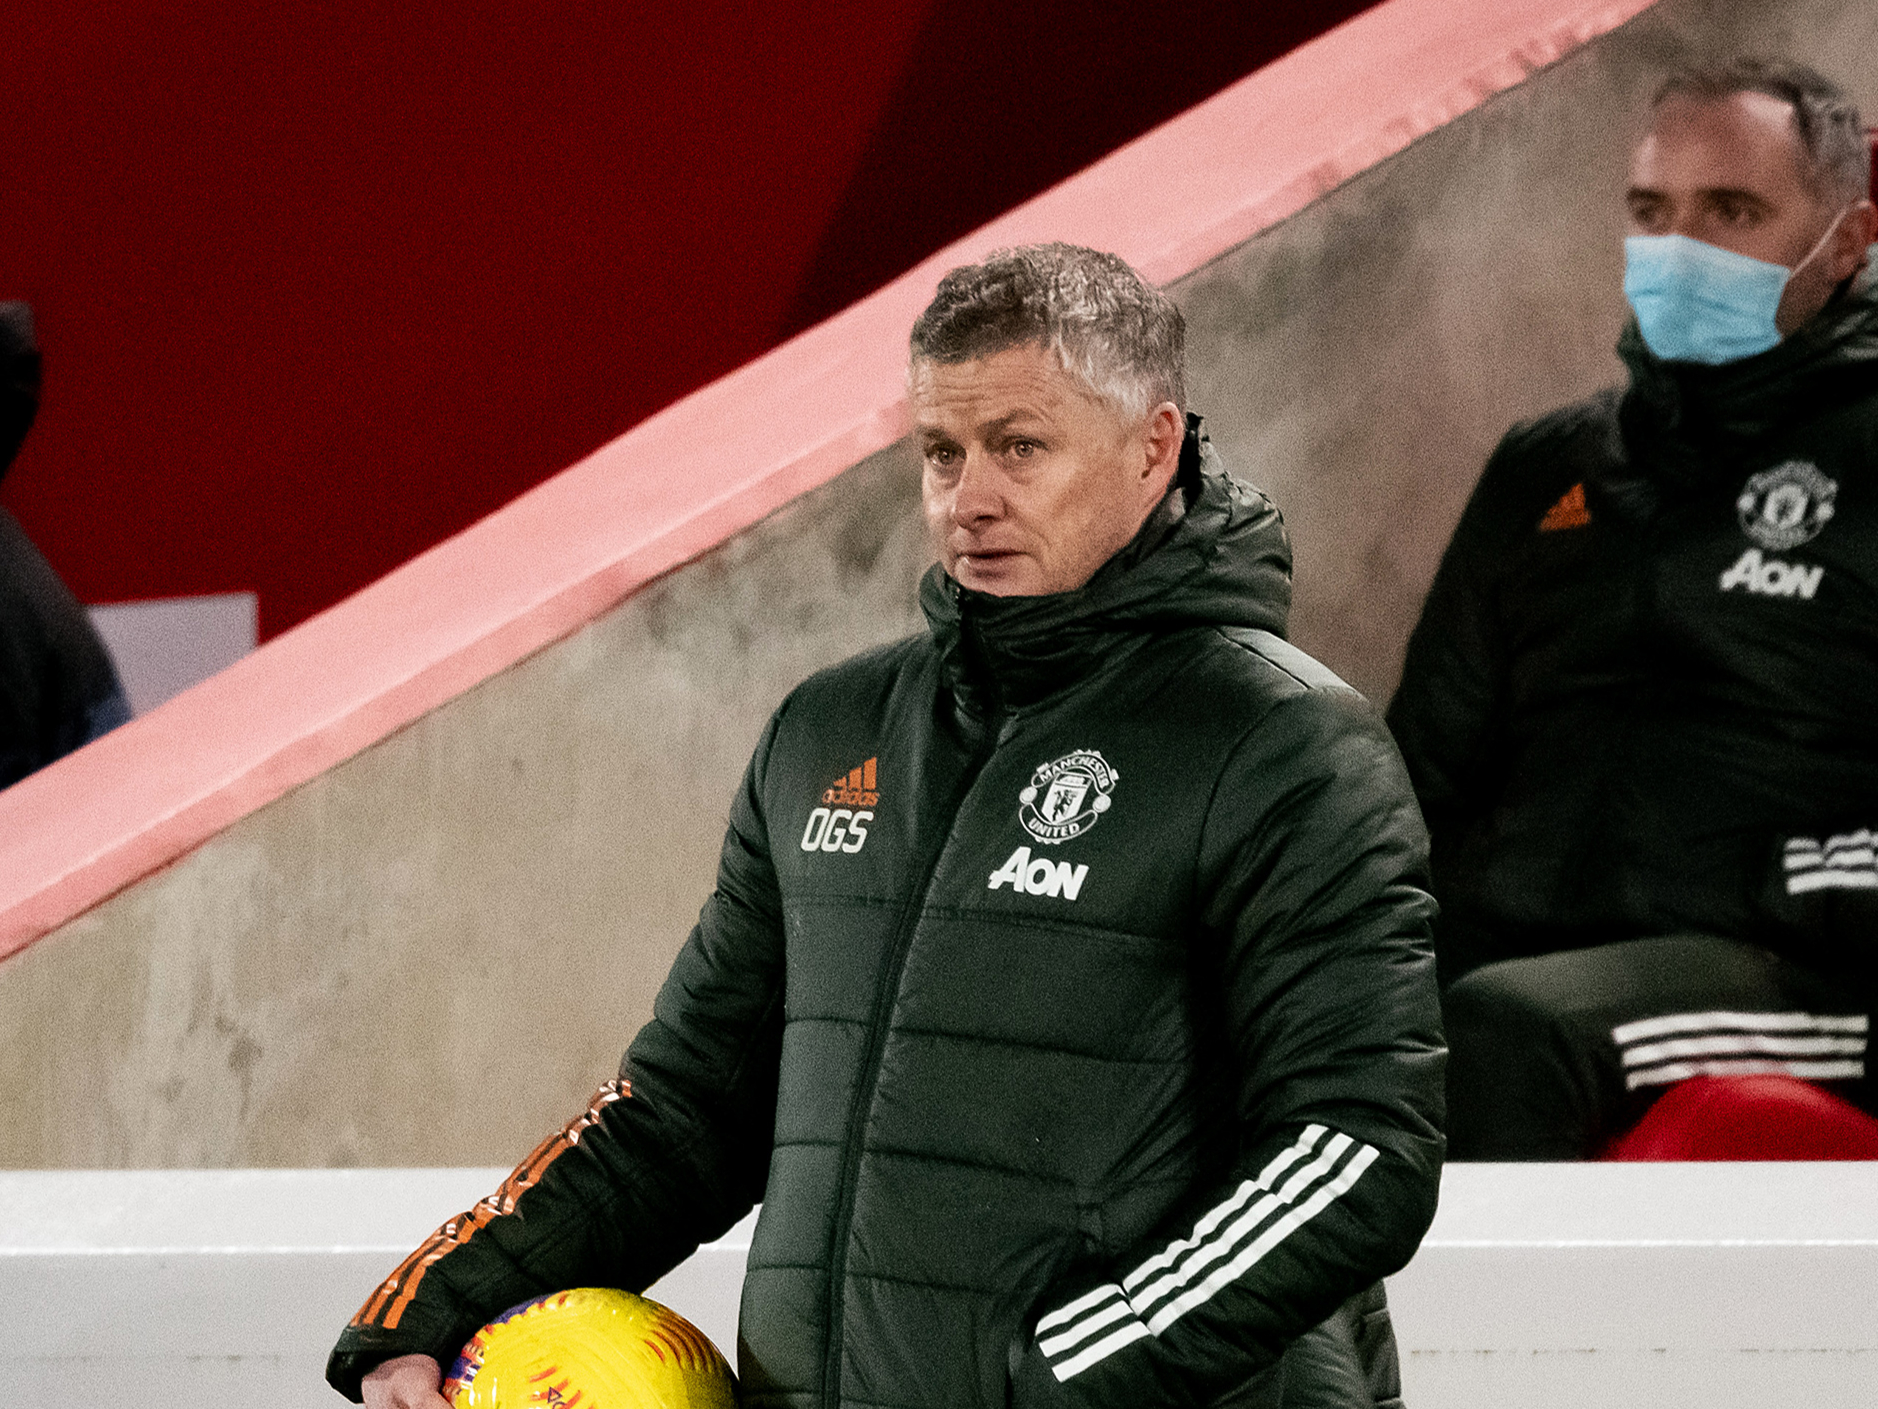 Ole Gunnar Solskjaer 'disappointed' with Manchester United draw at Liverpool